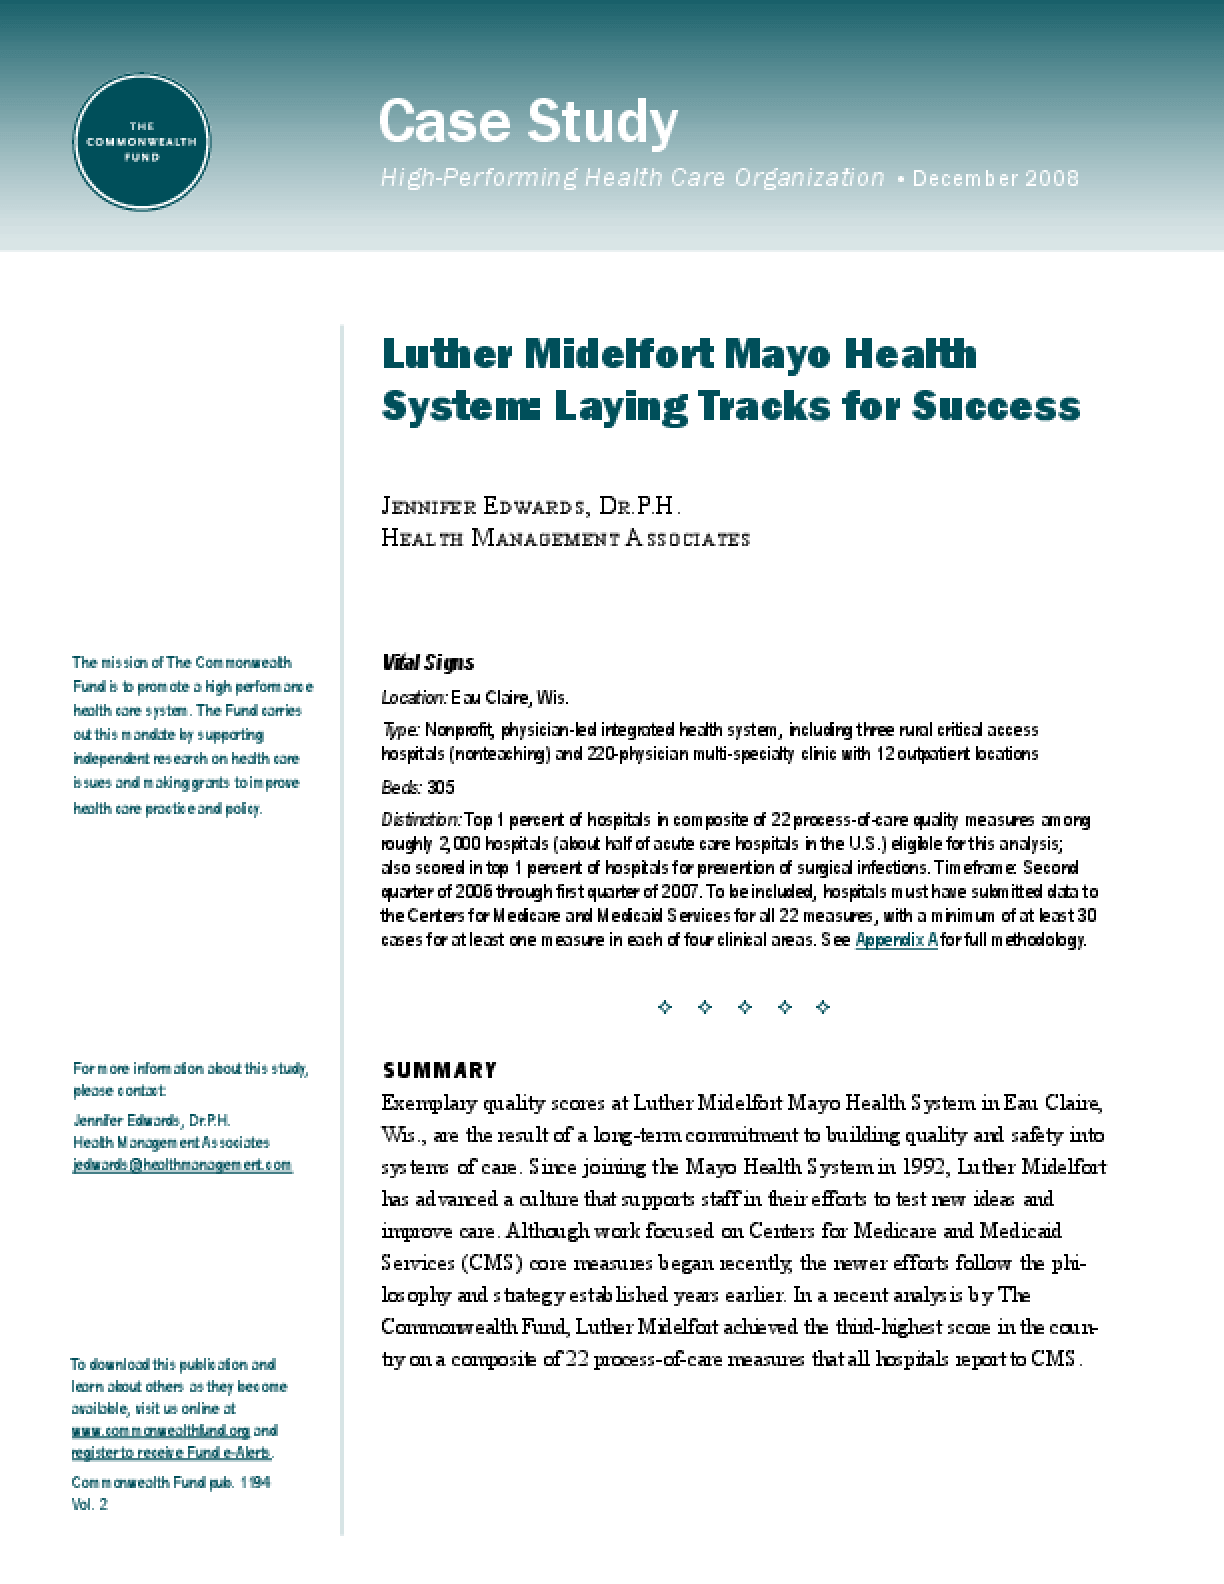 Luther Midelfort Mayo Health System: Laying Tracks for Success